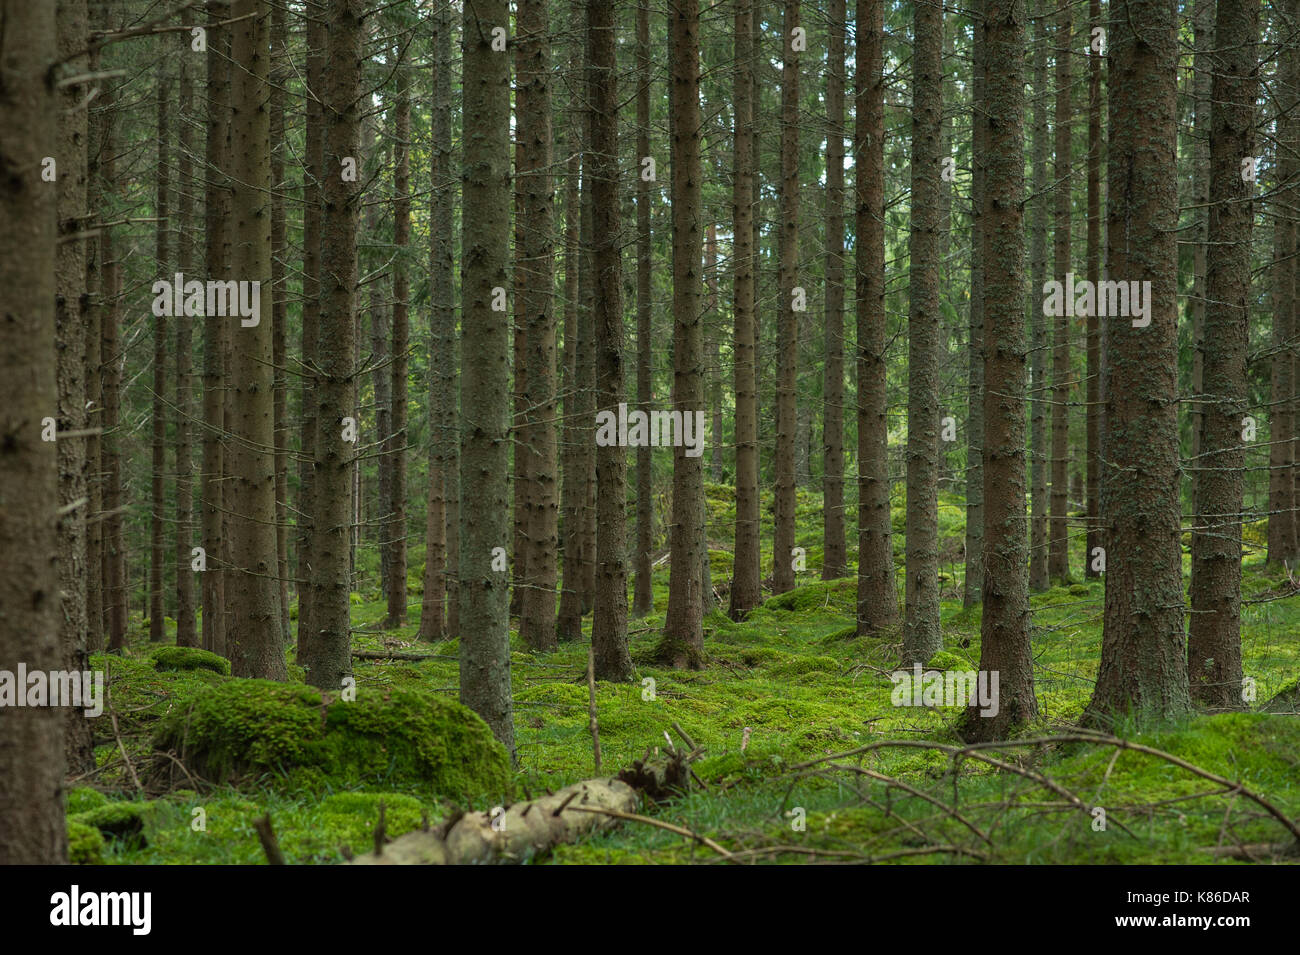 Swedish forest and mossy stones. - Stock Image